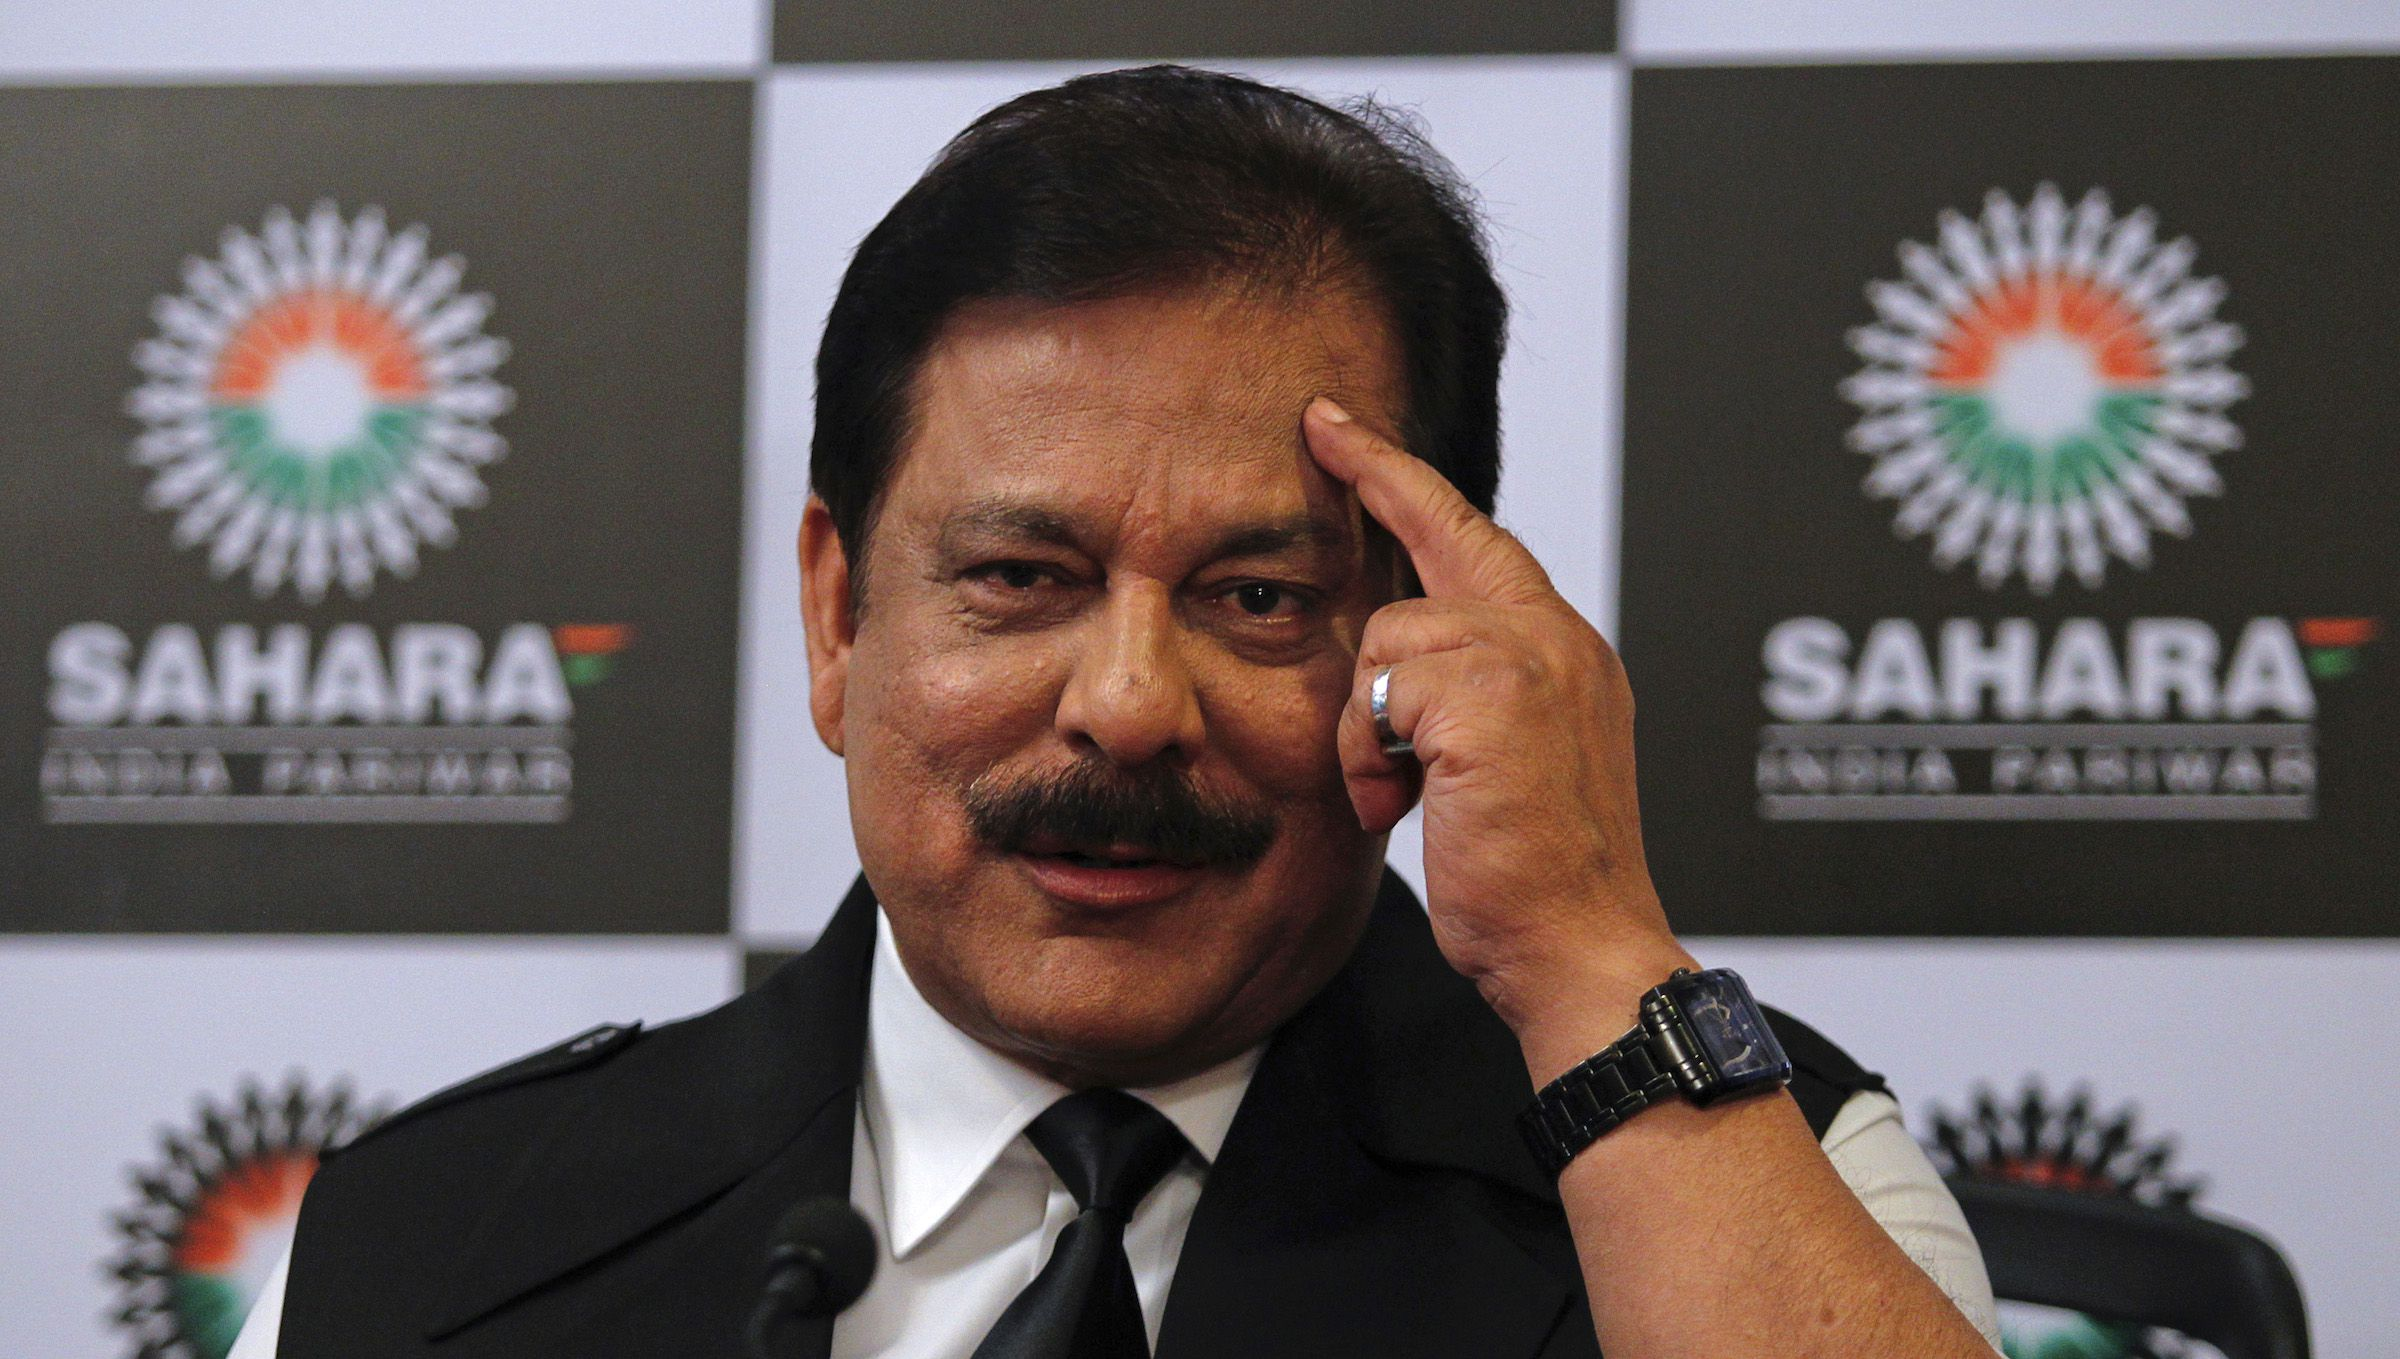 Sahara Group Chairman Subrata Roy gestures as he speaks during a news conference in Mumbai February 4, 2012. Sahara Group has pulled out of its sponsorship deal with the Indian cricket board and the Pune franchise of the Indian Premier League (IPL), the diversified business conglomerate said on Saturday. REUTERS/Danish Siddiqui (INDIA - Tags: SPORT BUSINESS CRICKET HEADSHOT) - RTR2XAHZ